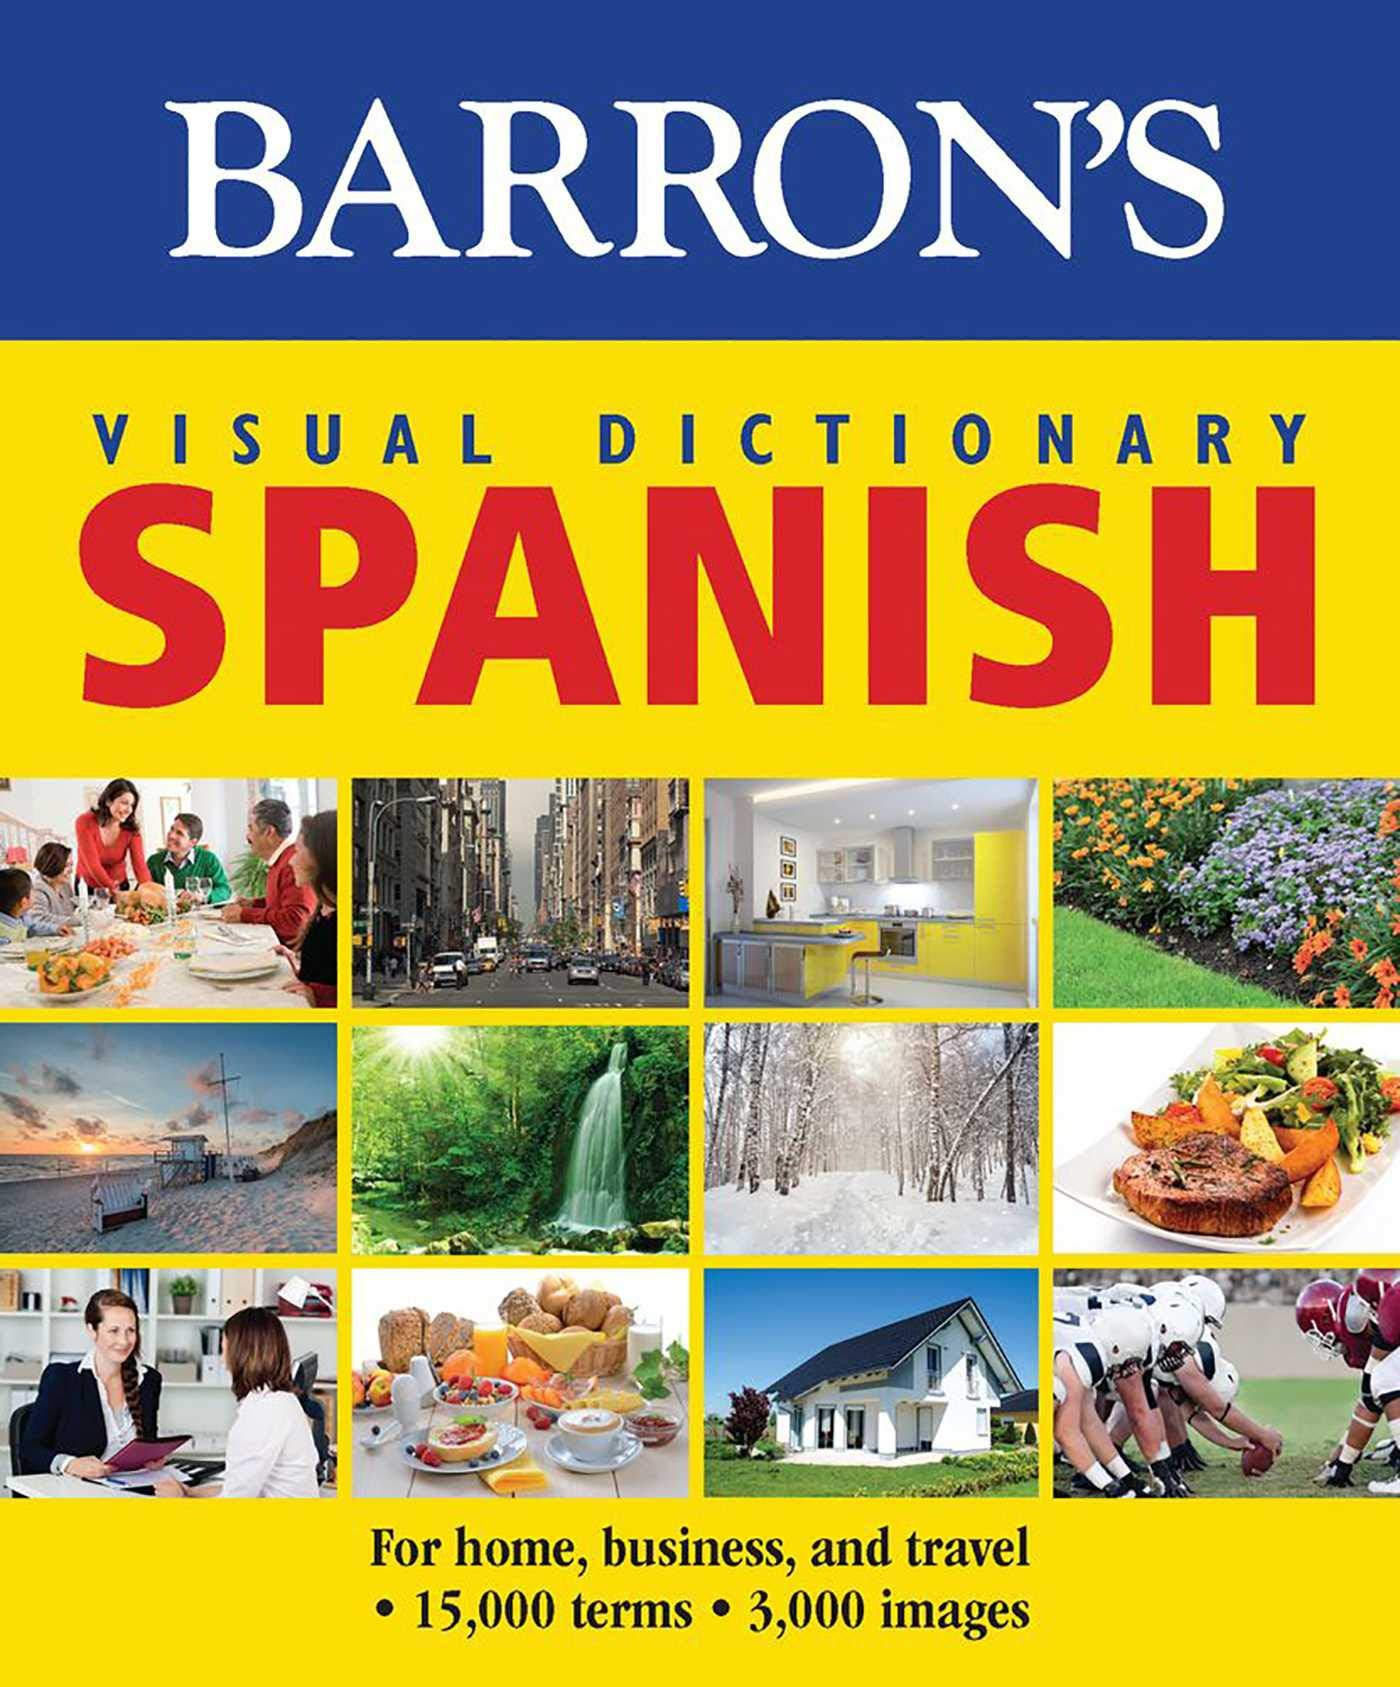 Barrons Visual Dictionary: Spanish: For Home, Business, and Travel (Barrons Visual Dictionaries) Paperback – January 1, 2015